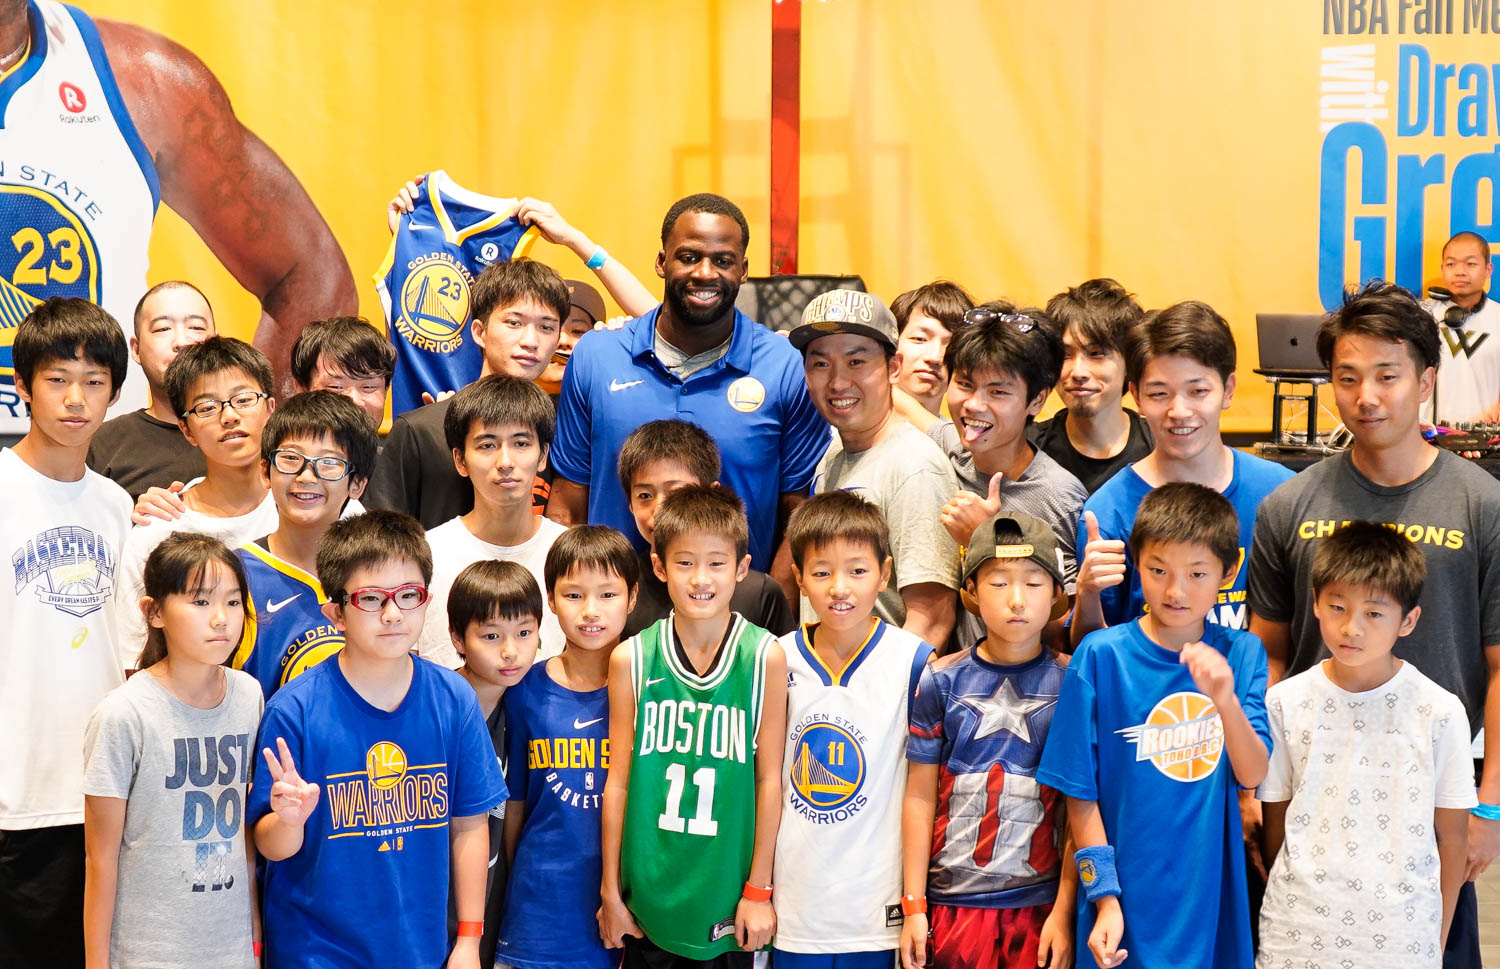 Draymond Green visited Rakuten's Tokyo headquarters, taking part in a very special fan event, as part of a tour facilitated by the NBA and Rakuten TV